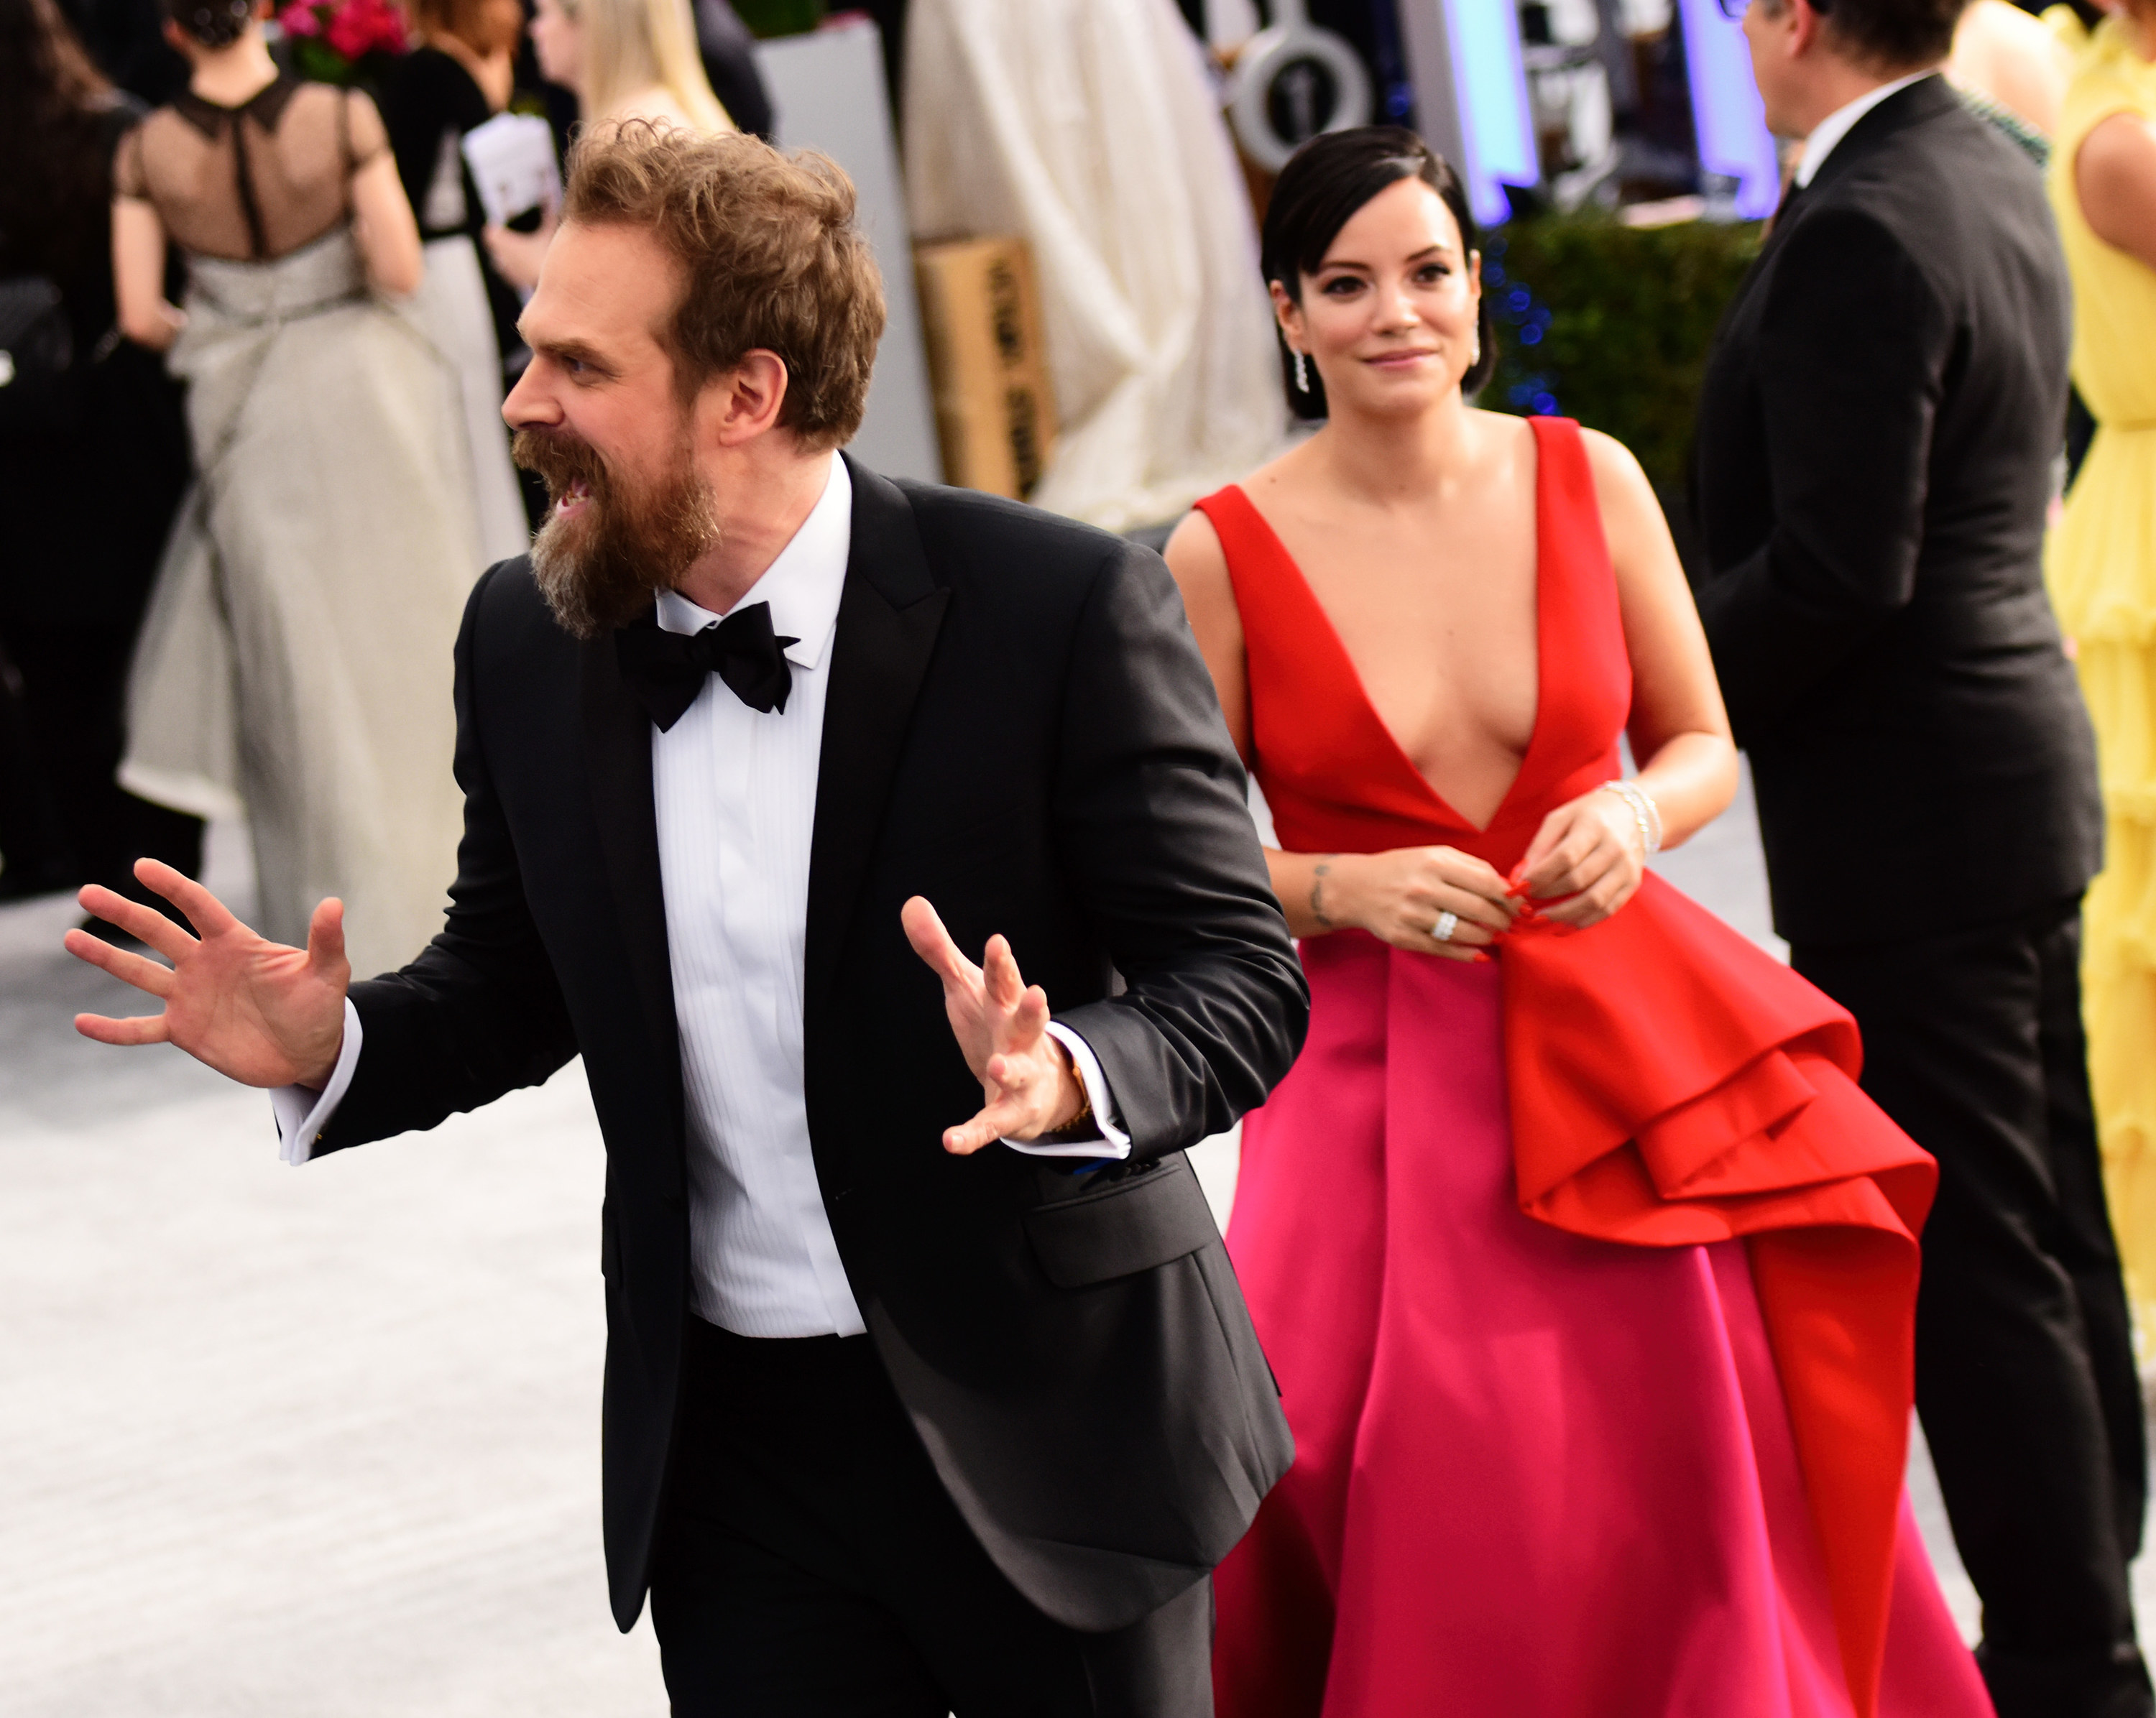 David Harbour making playful faces in a bow tie withLily Allen in a low-cut long dress